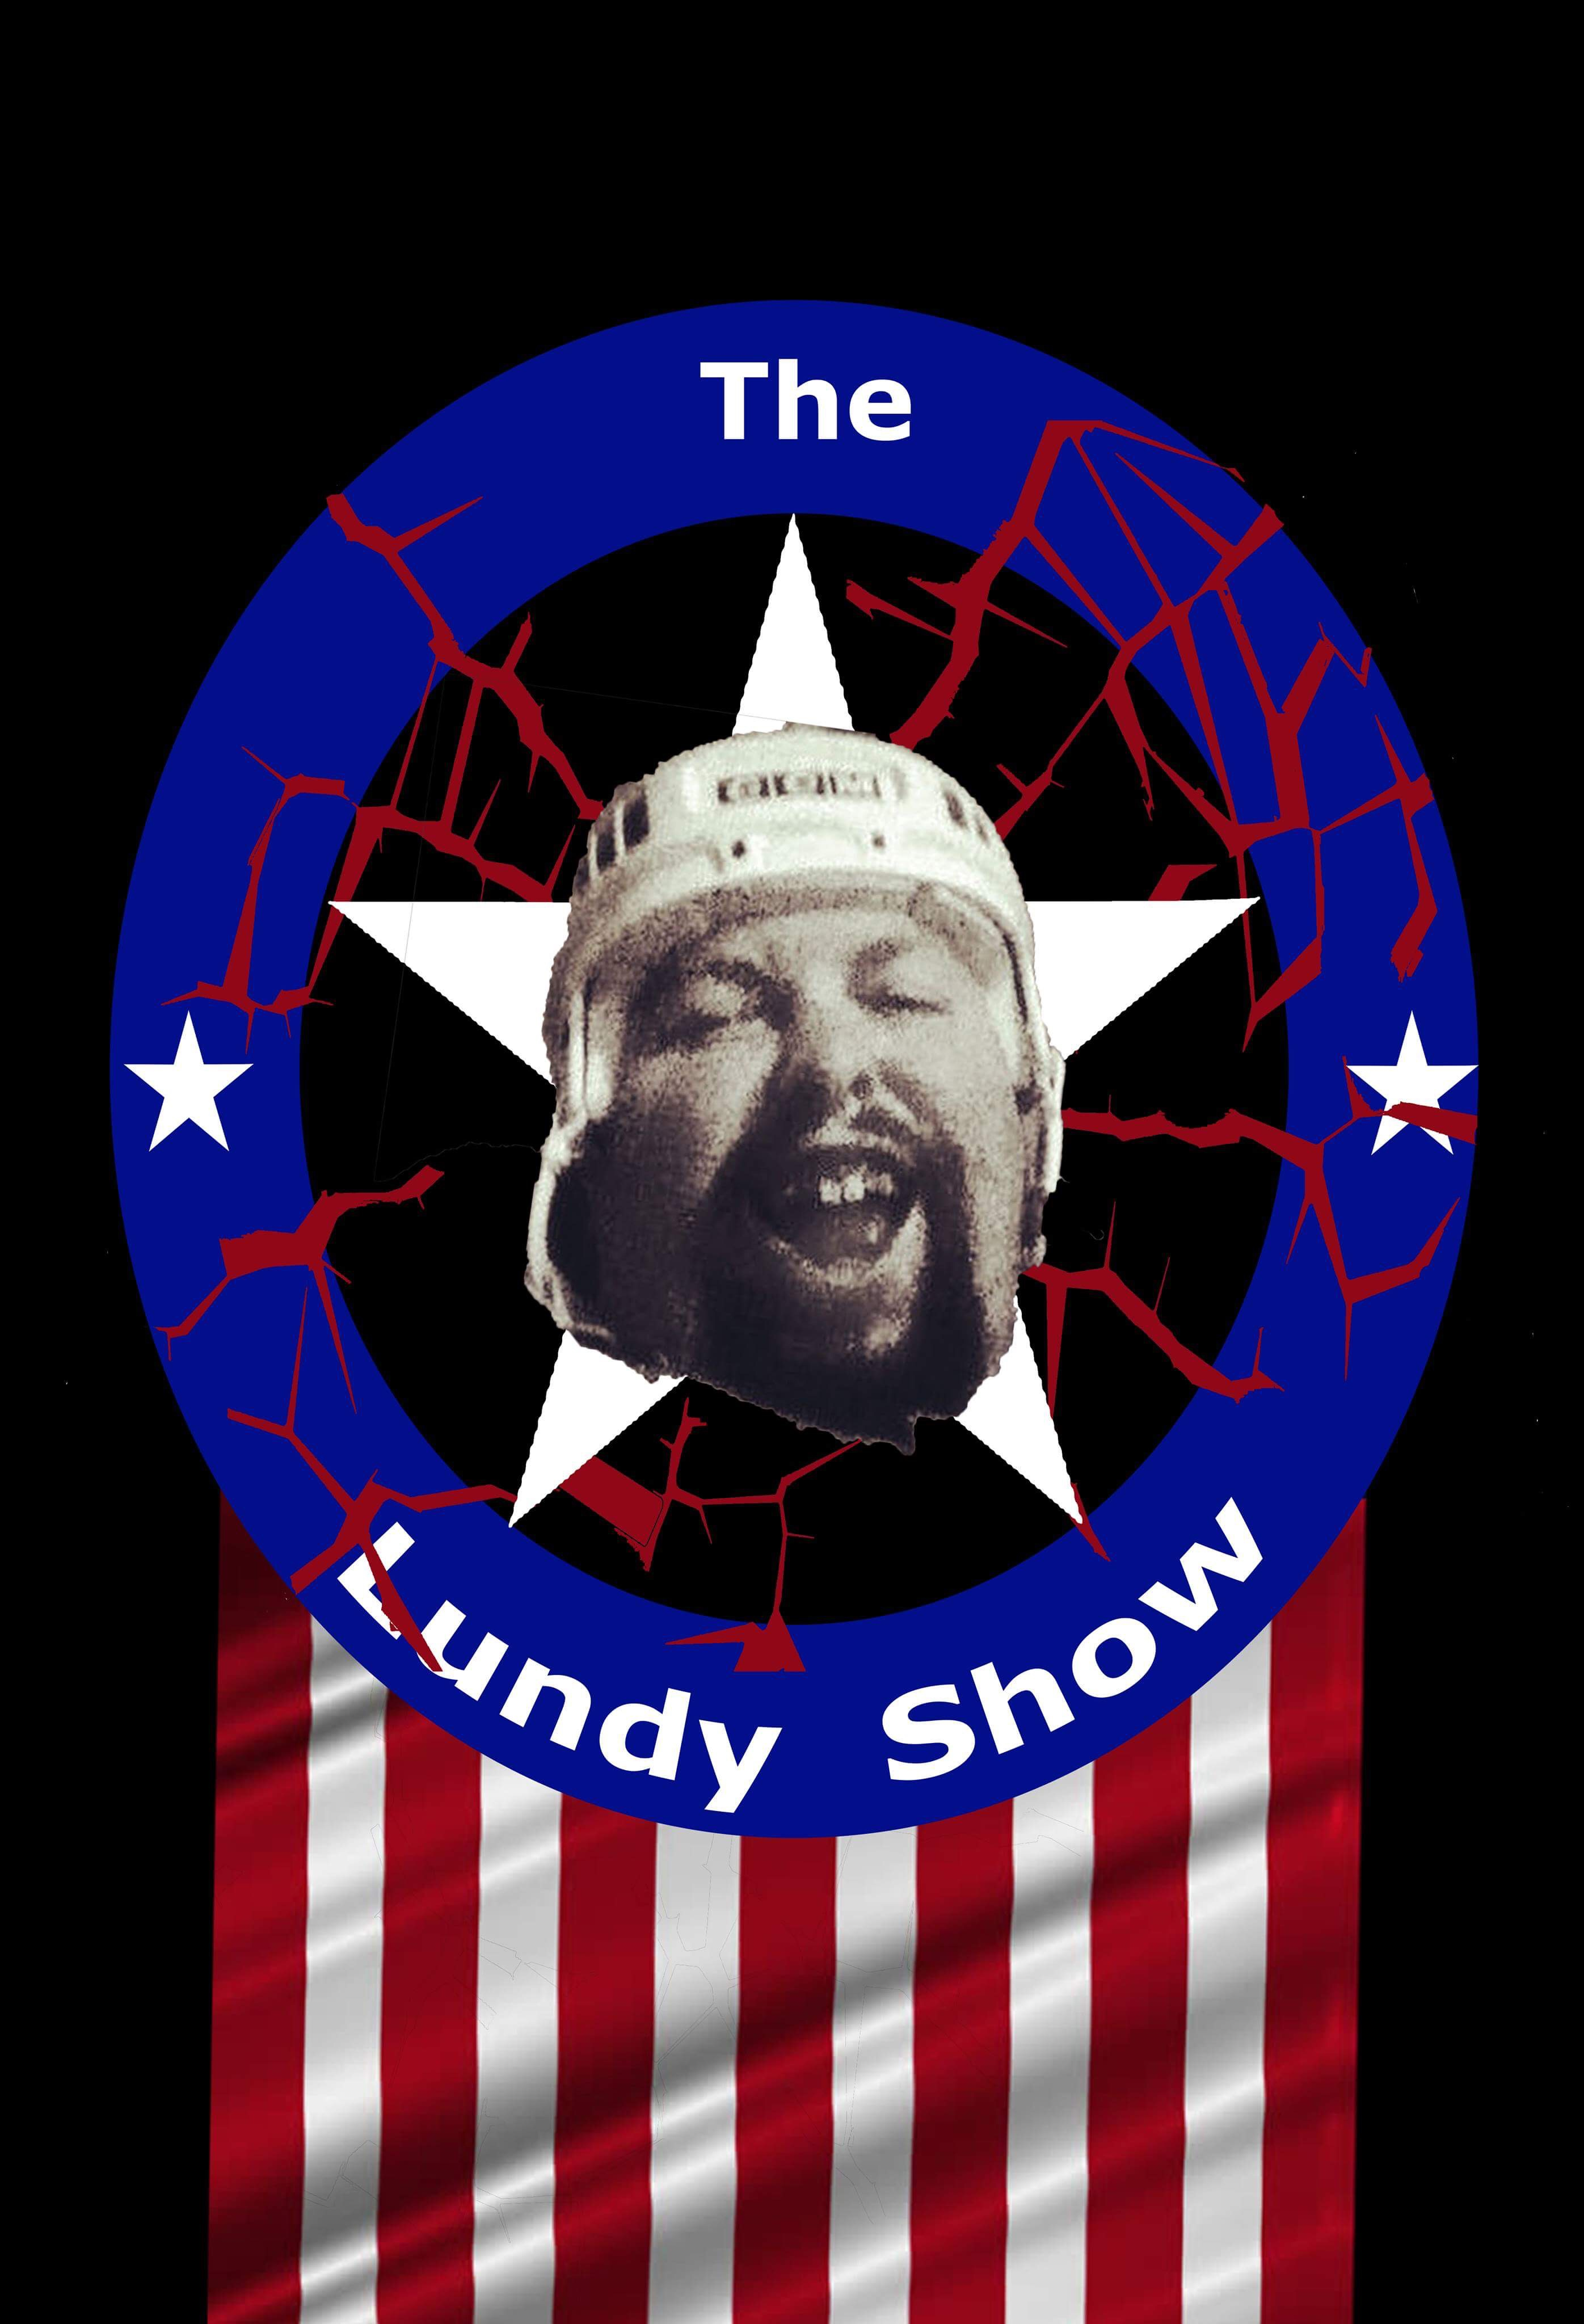 The Lundy Show